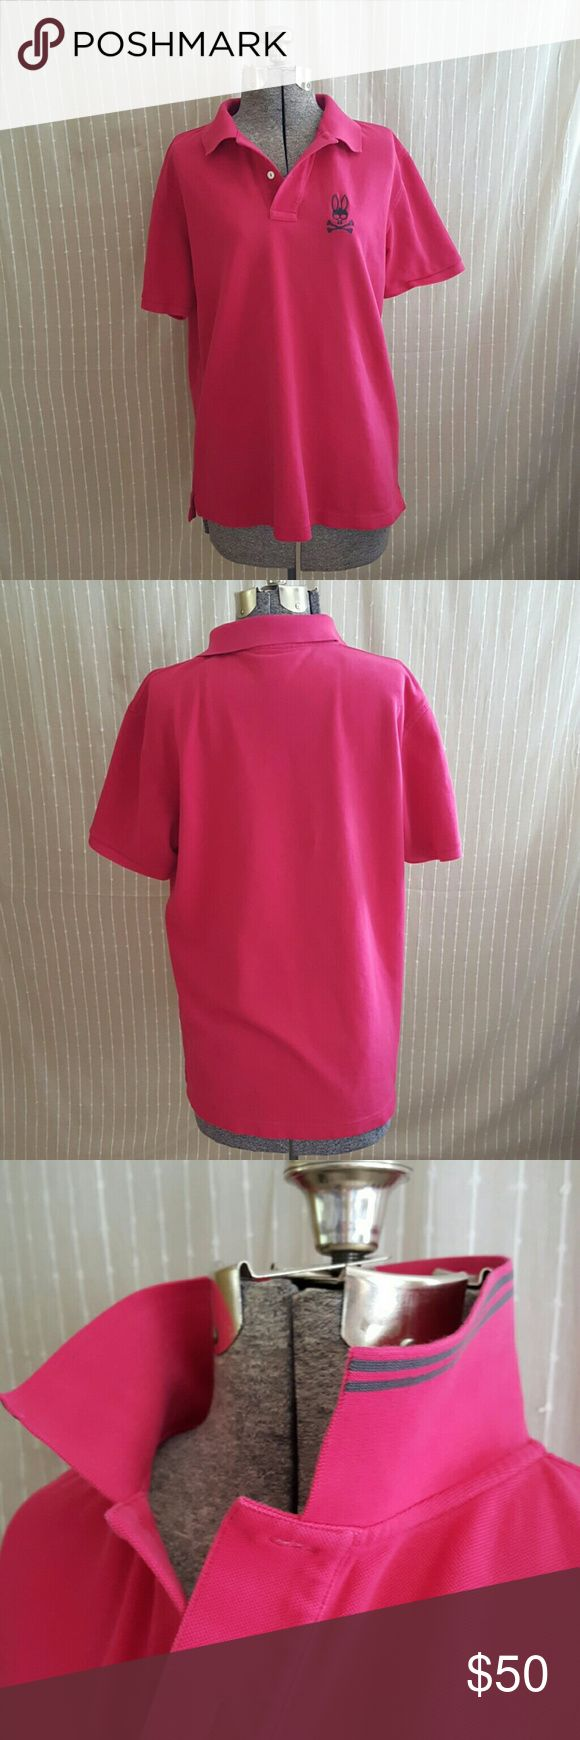 Psycho Bunny Pink Polo Psycho Bunny hot pink polo shirt. This is a men's large but also fits like a women's large and can fit a small to x-large woman depending on how oversized you want it. Perfect condition. Psycho Bunny Shirts Polos